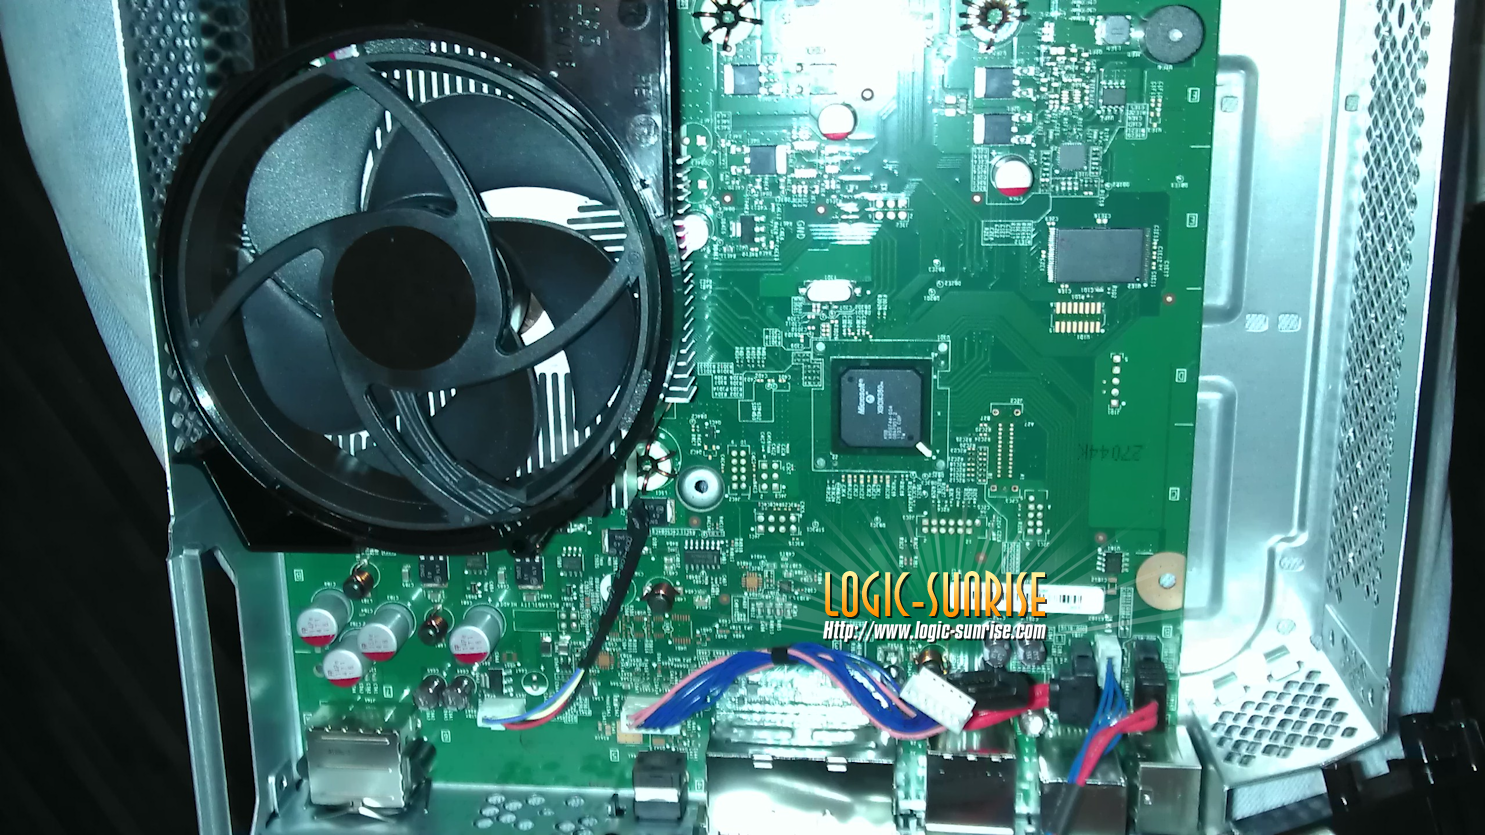 New Motherboard Rev In Slims No More Rgh Xbox 360 Schematic Diagram Moreover S Http Logic Sunrisecom Images Imnewmobo2